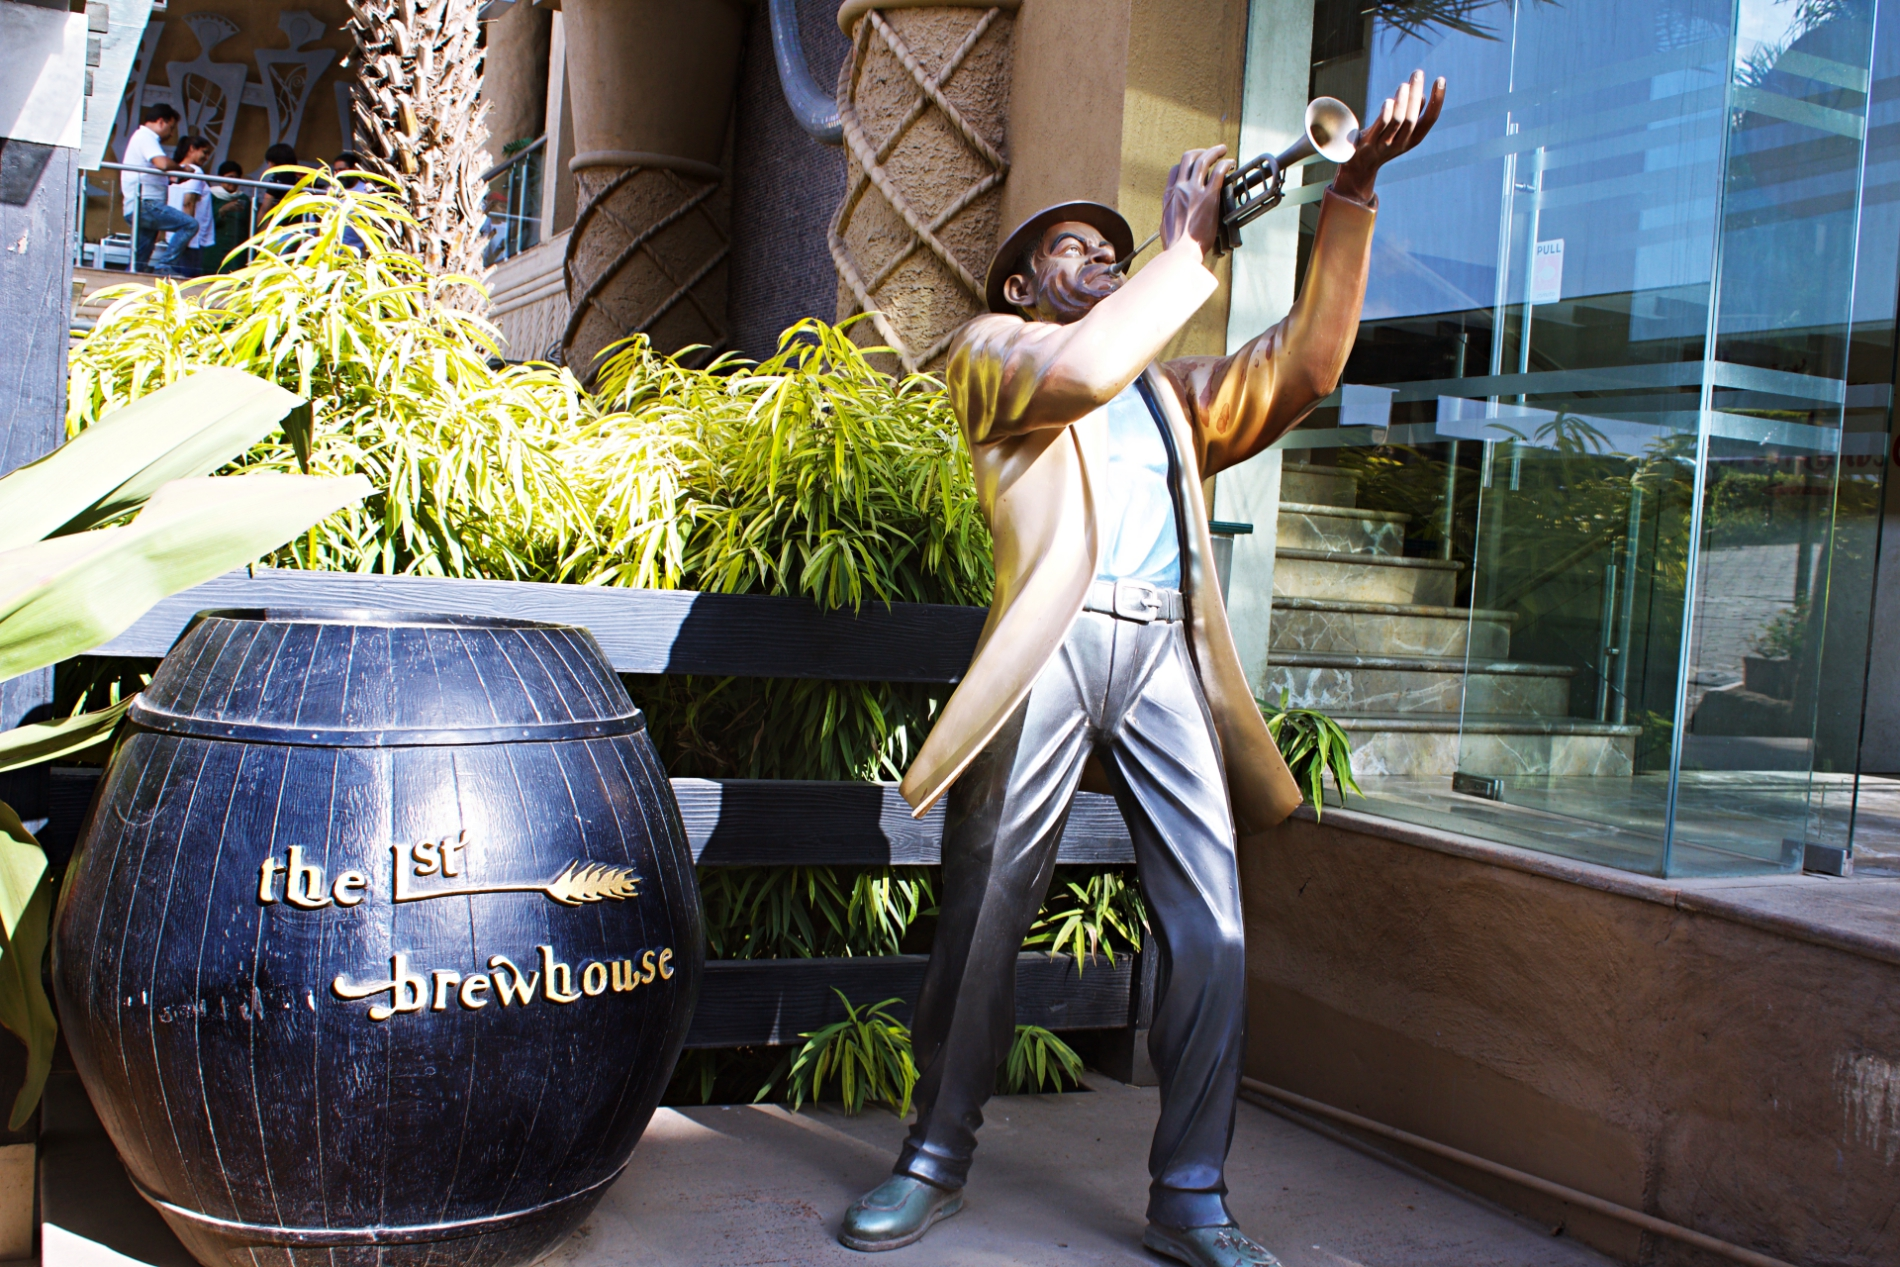 The 1st Brewhouse Pune